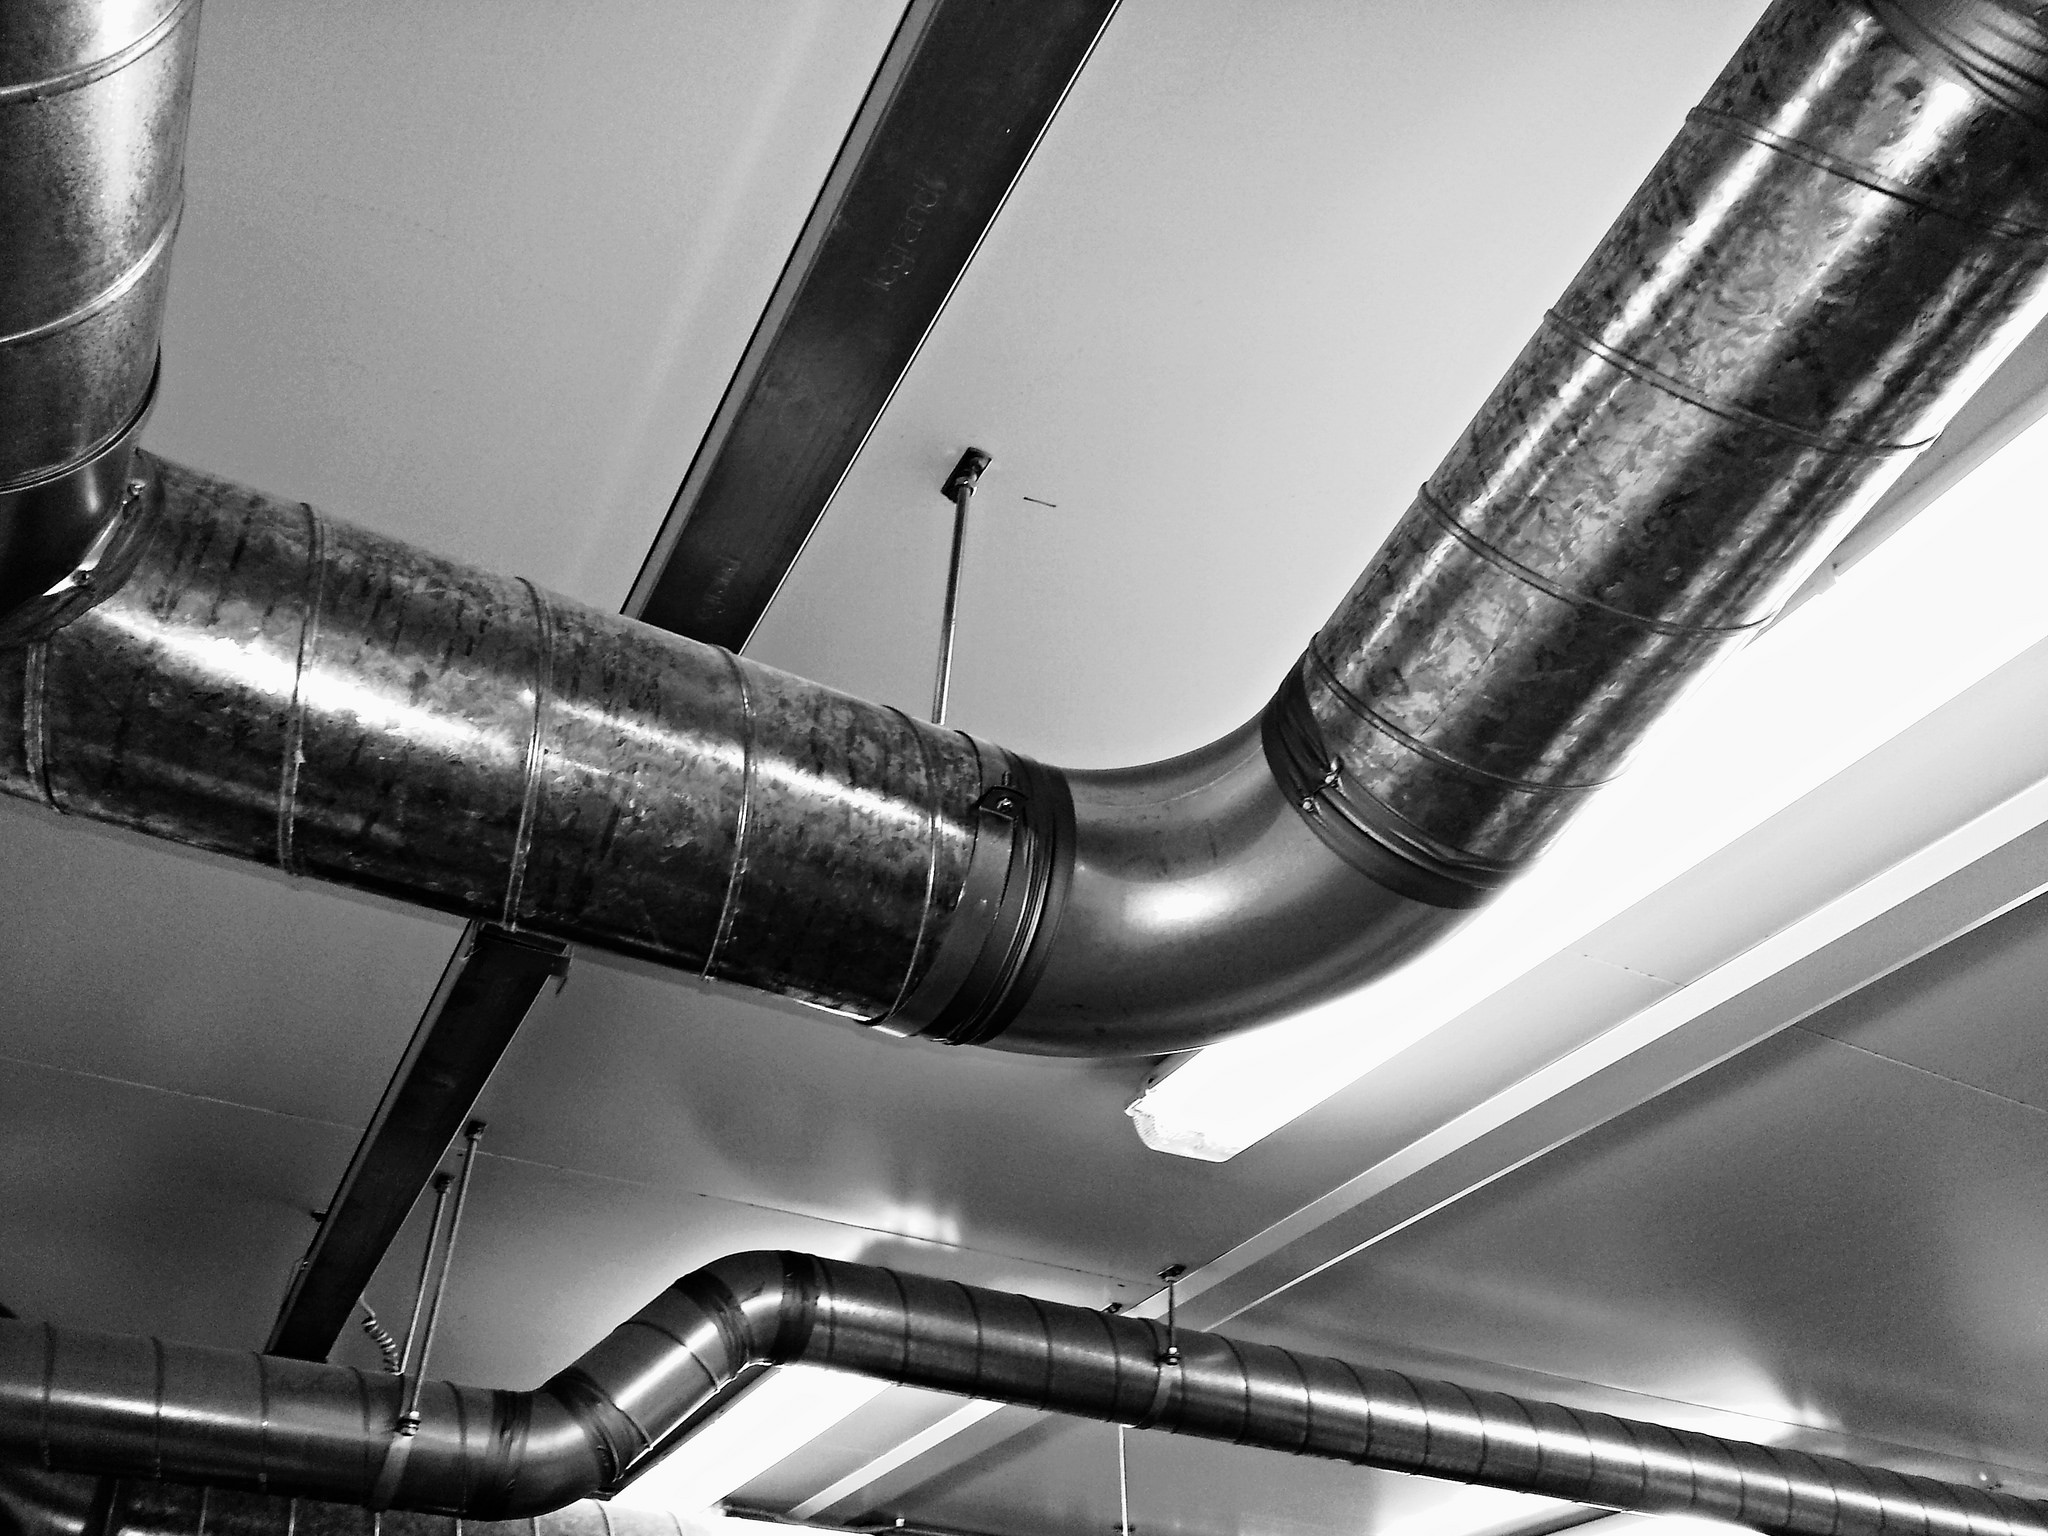 Ventilation Systems Ducting : How much does an mvhr heat recovery ventilation cost to